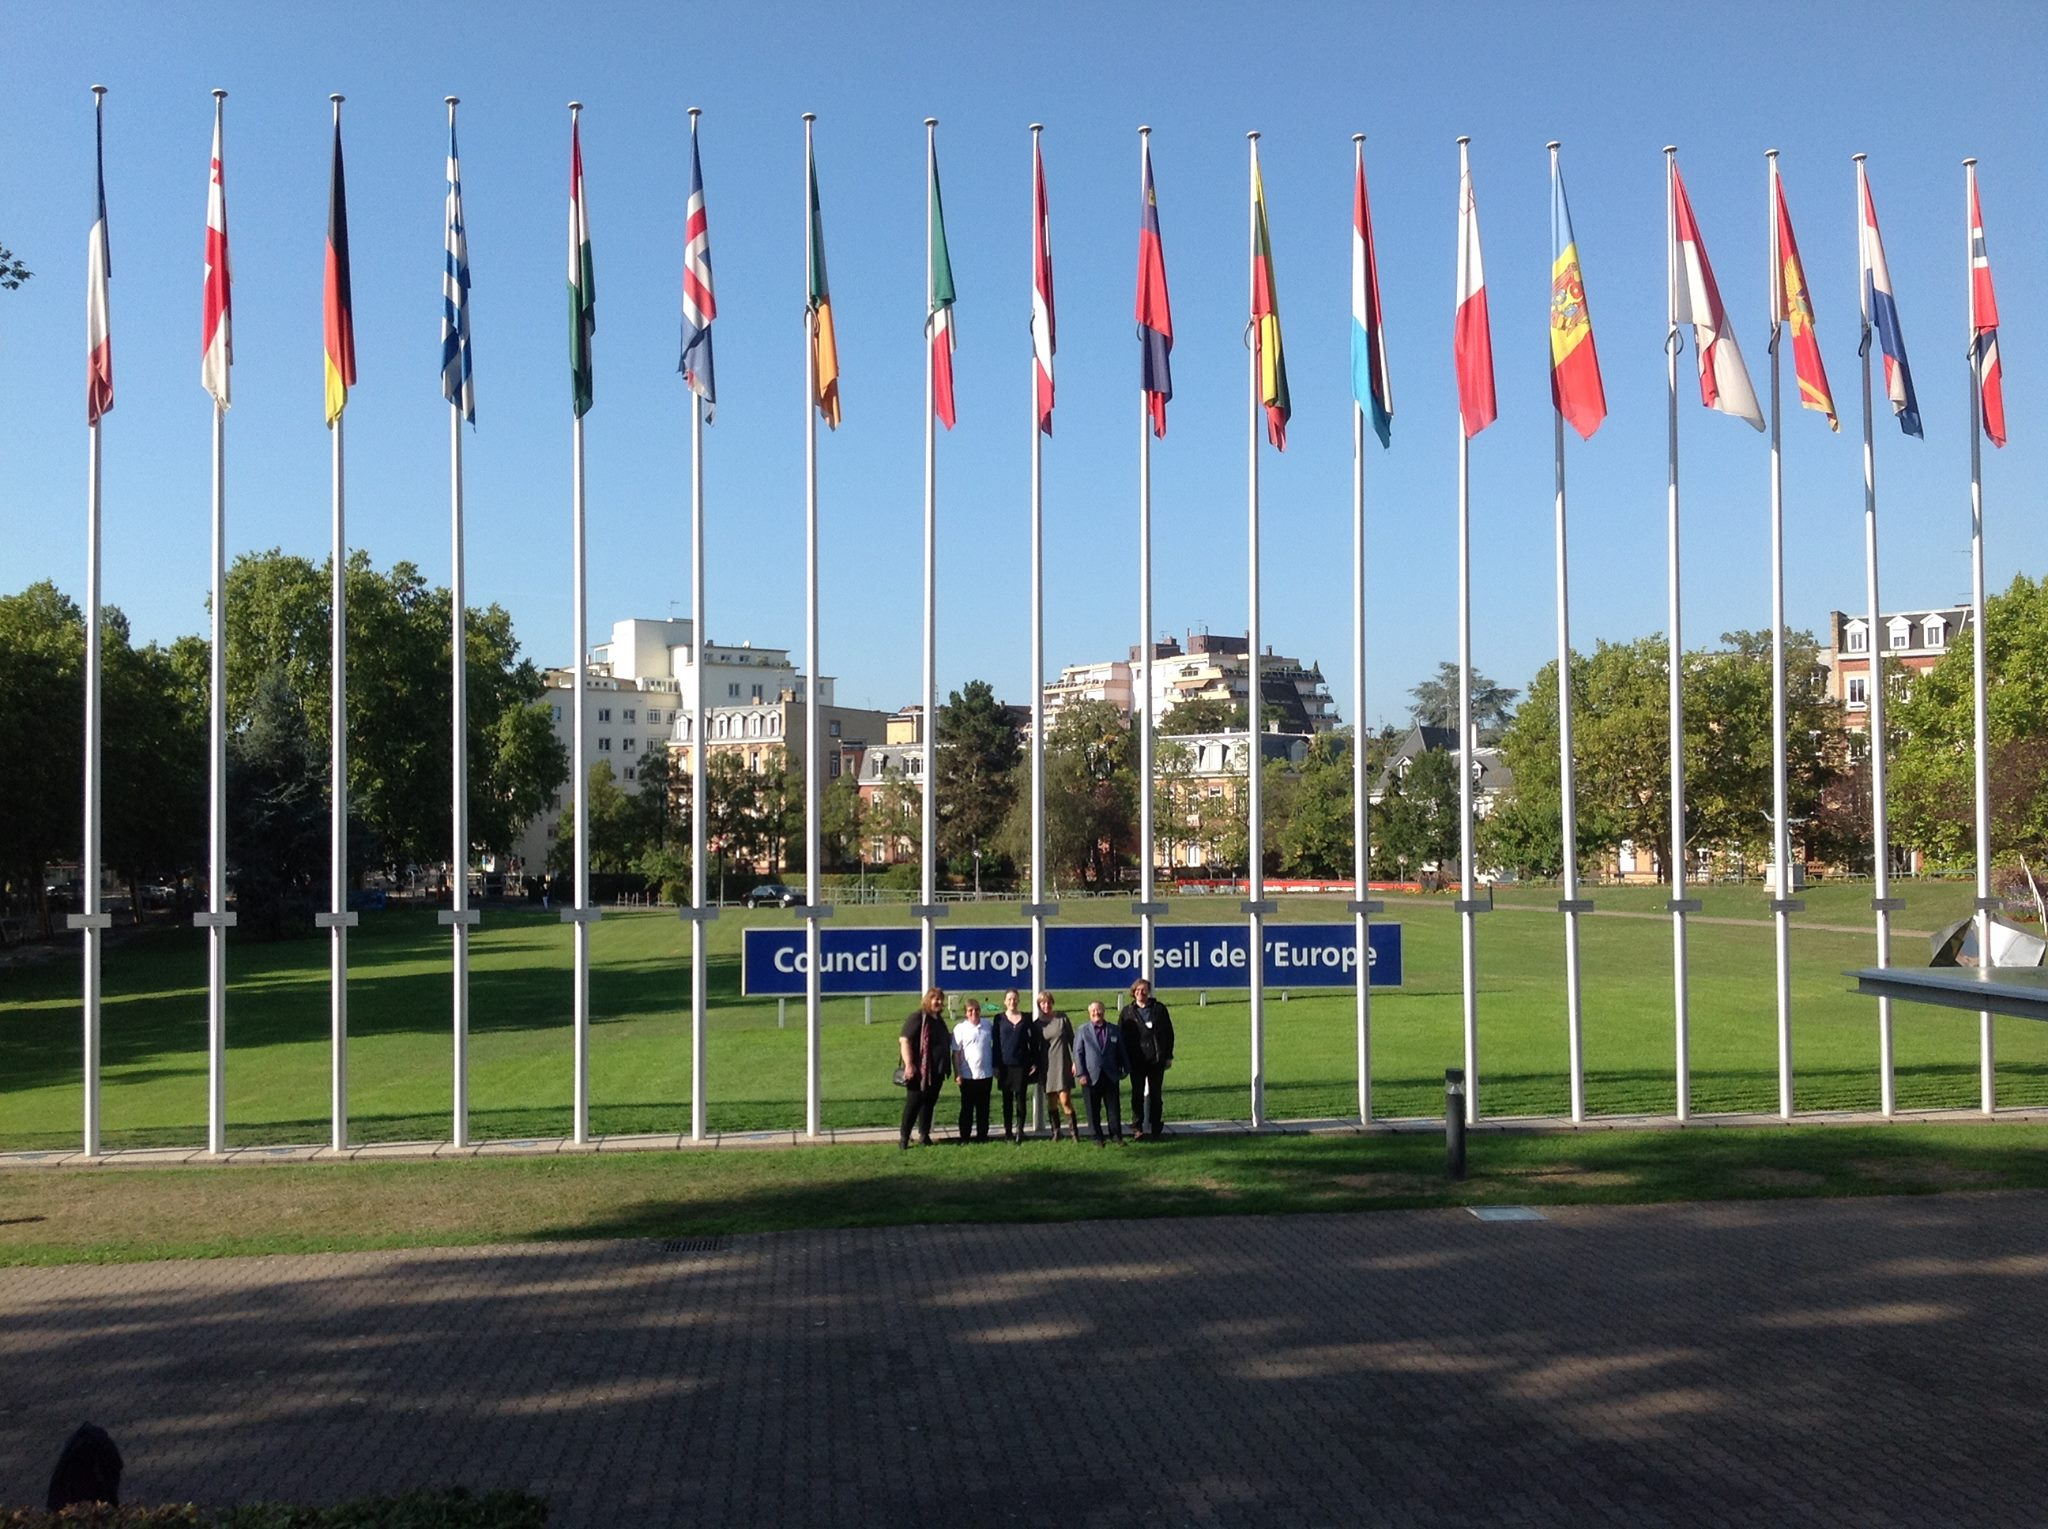 OII Europe at the Council of Europe, Stasbourg 2015